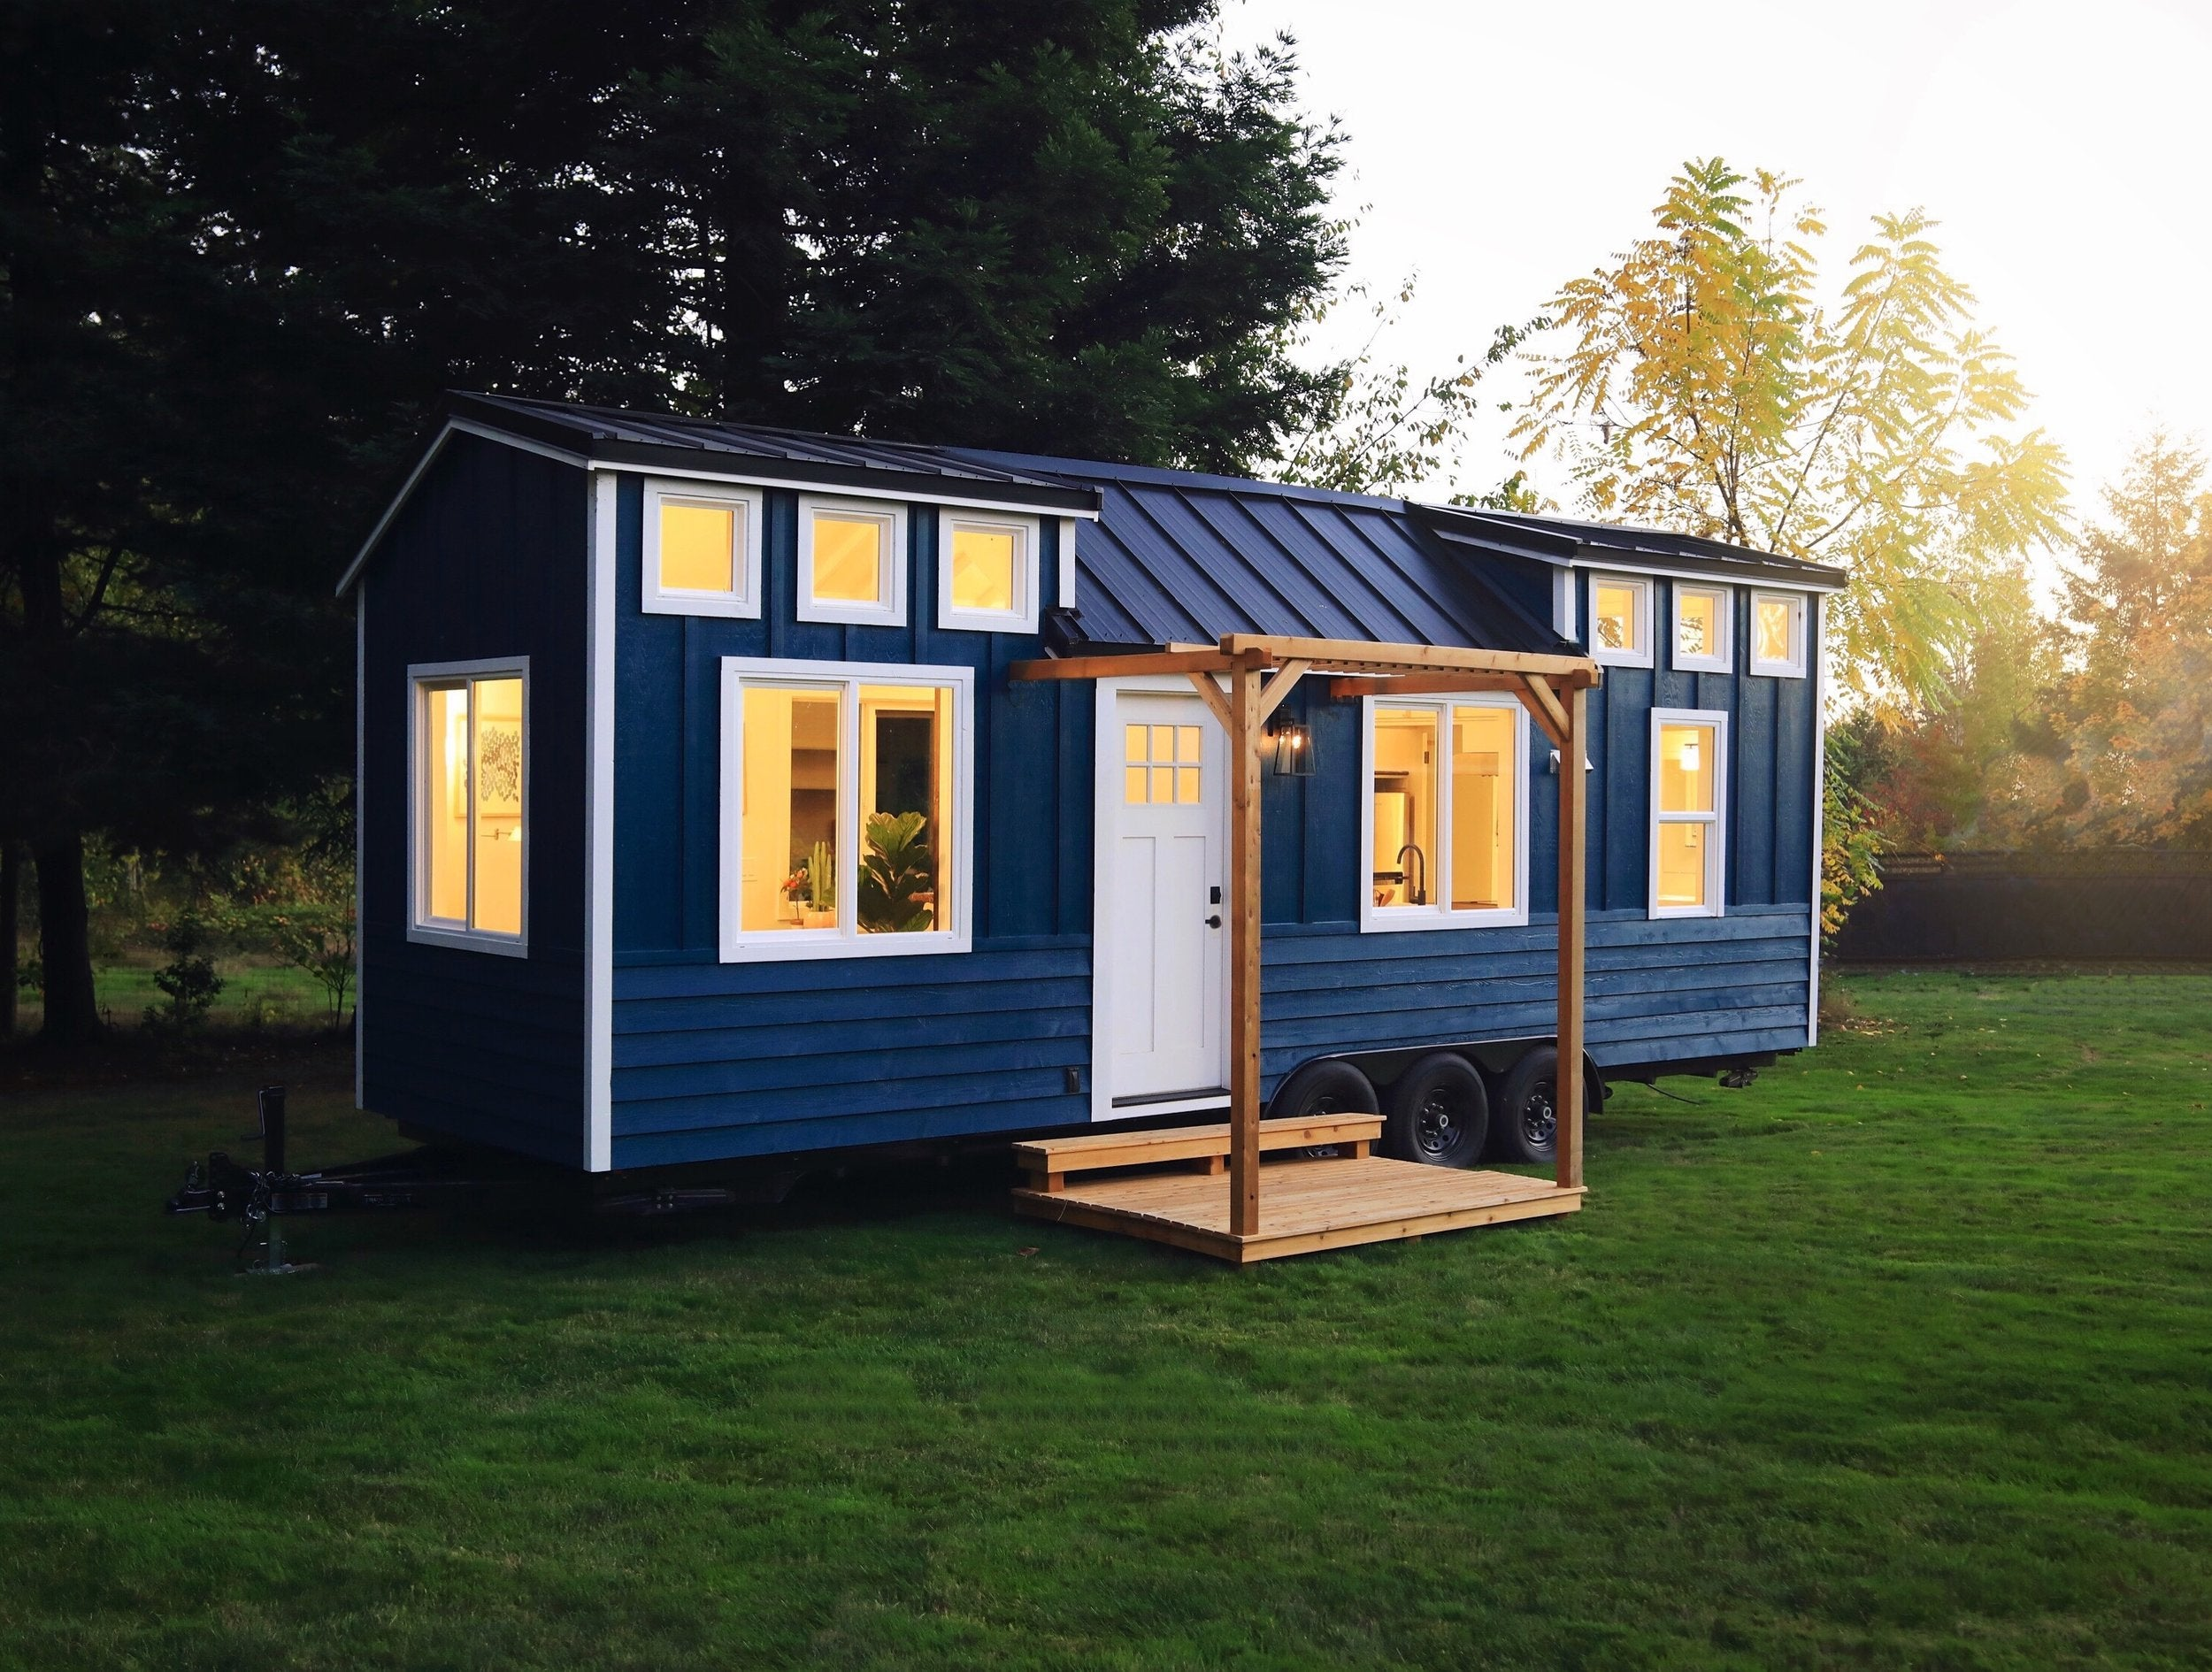 FEATURED_Cadence+Tiny+Home+by+Handcrafted+Movement